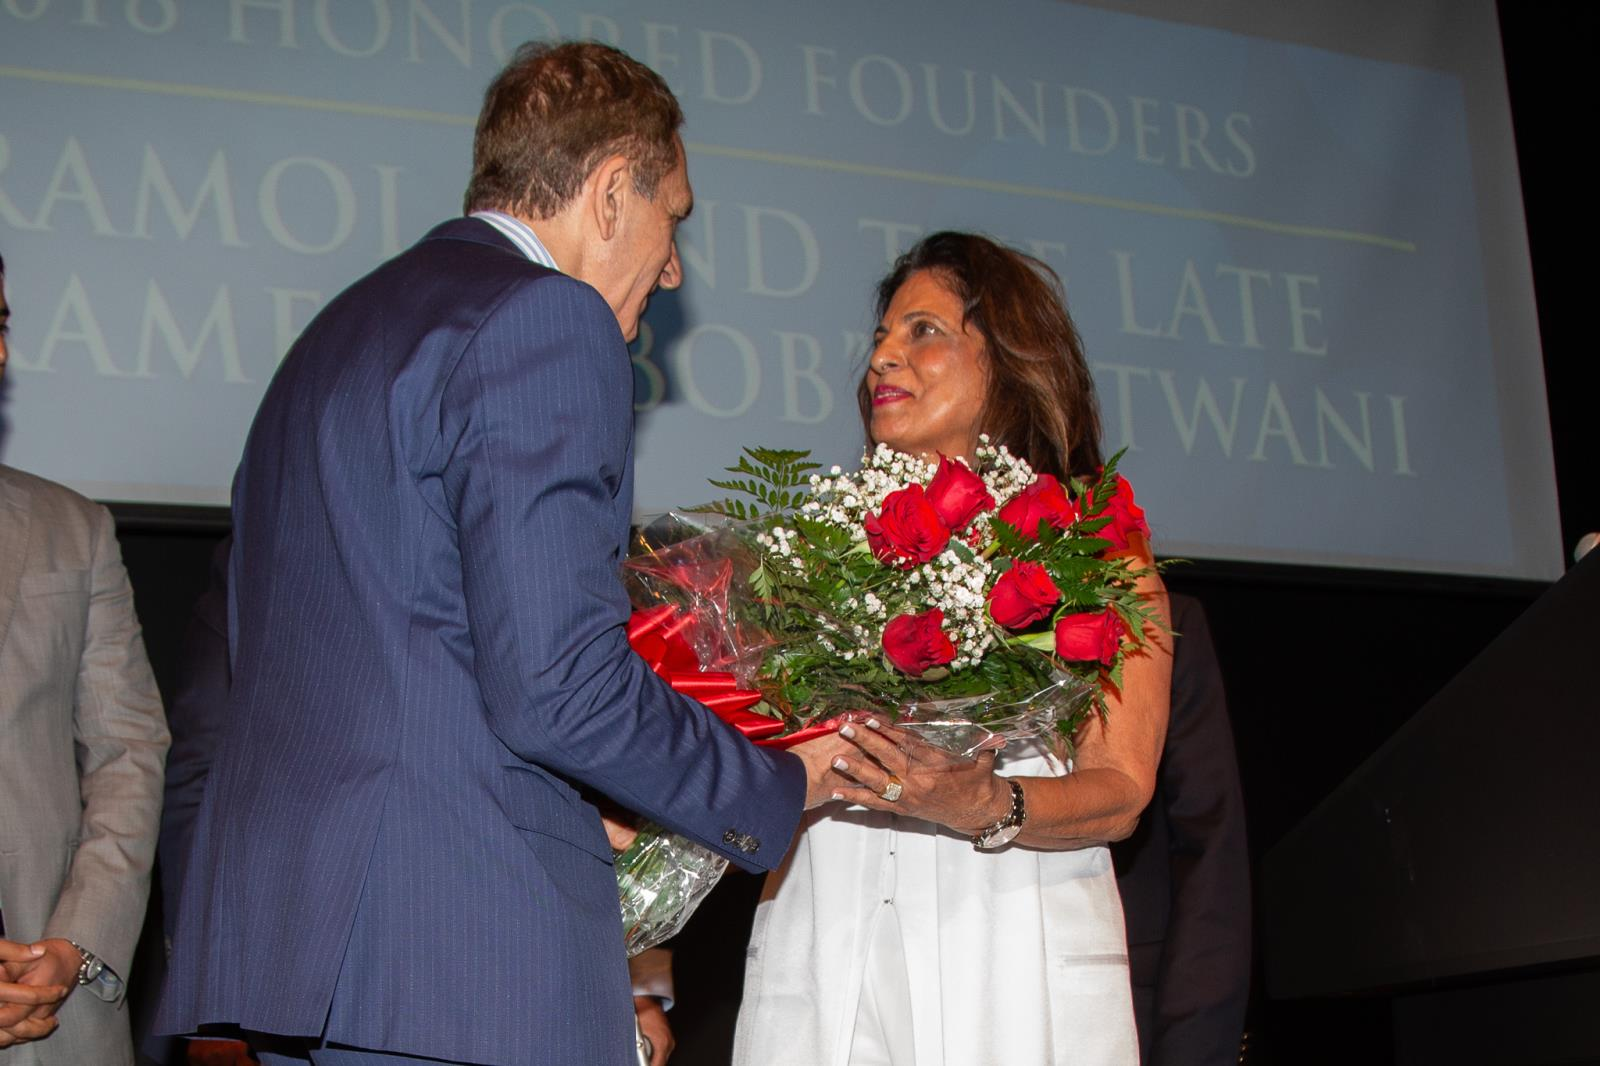 Mayor Dean Trantalis recognizes 2018 Honored Founder Ramola Motwani